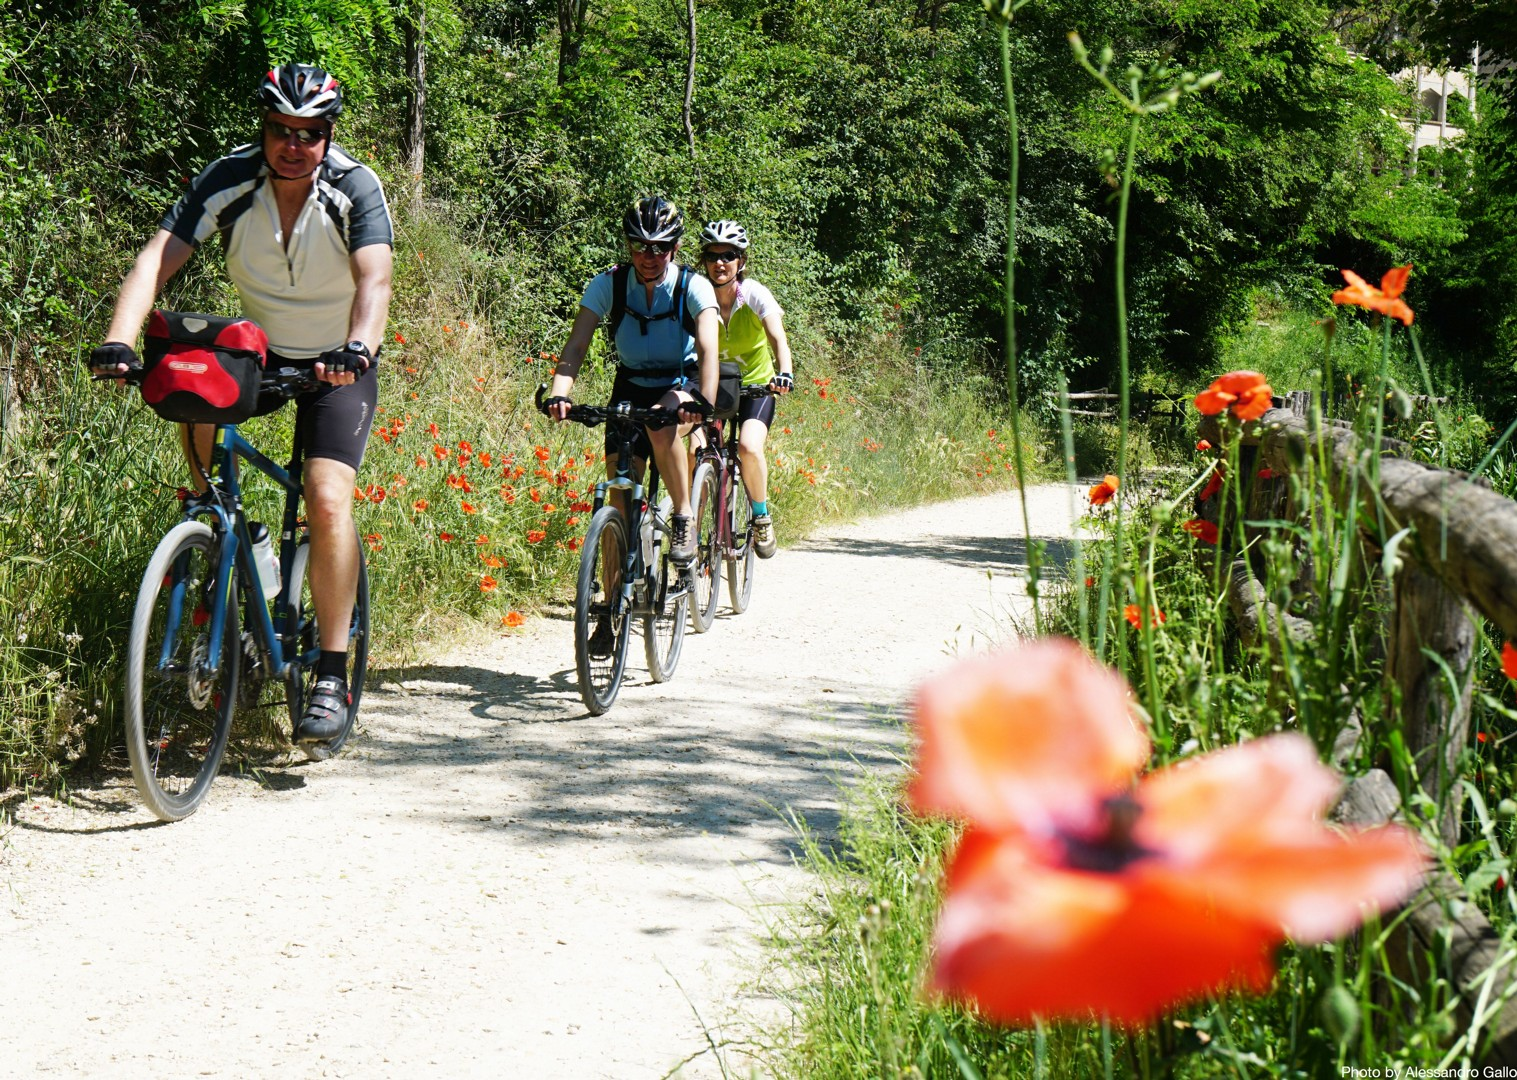 spello-green-heart-of-umbria-italy-self-guided-leisure-cycling.JPG - NEW! Italy - Spirit of Umbria - Family Cycling